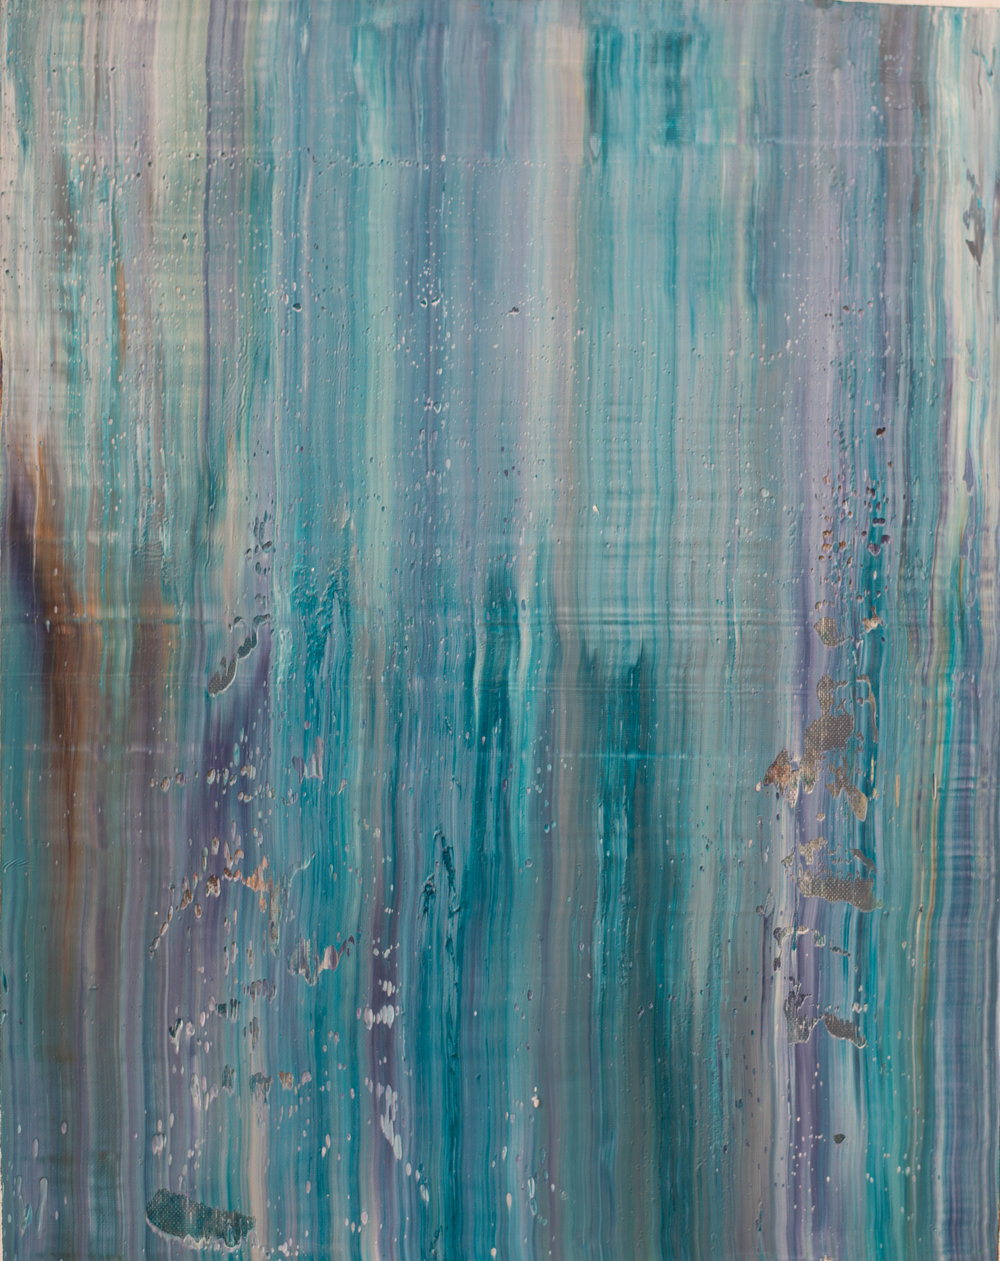 """DRIFT"" is an original, abstract oil painting by Los Angeles based artist, Laura Viapiano."